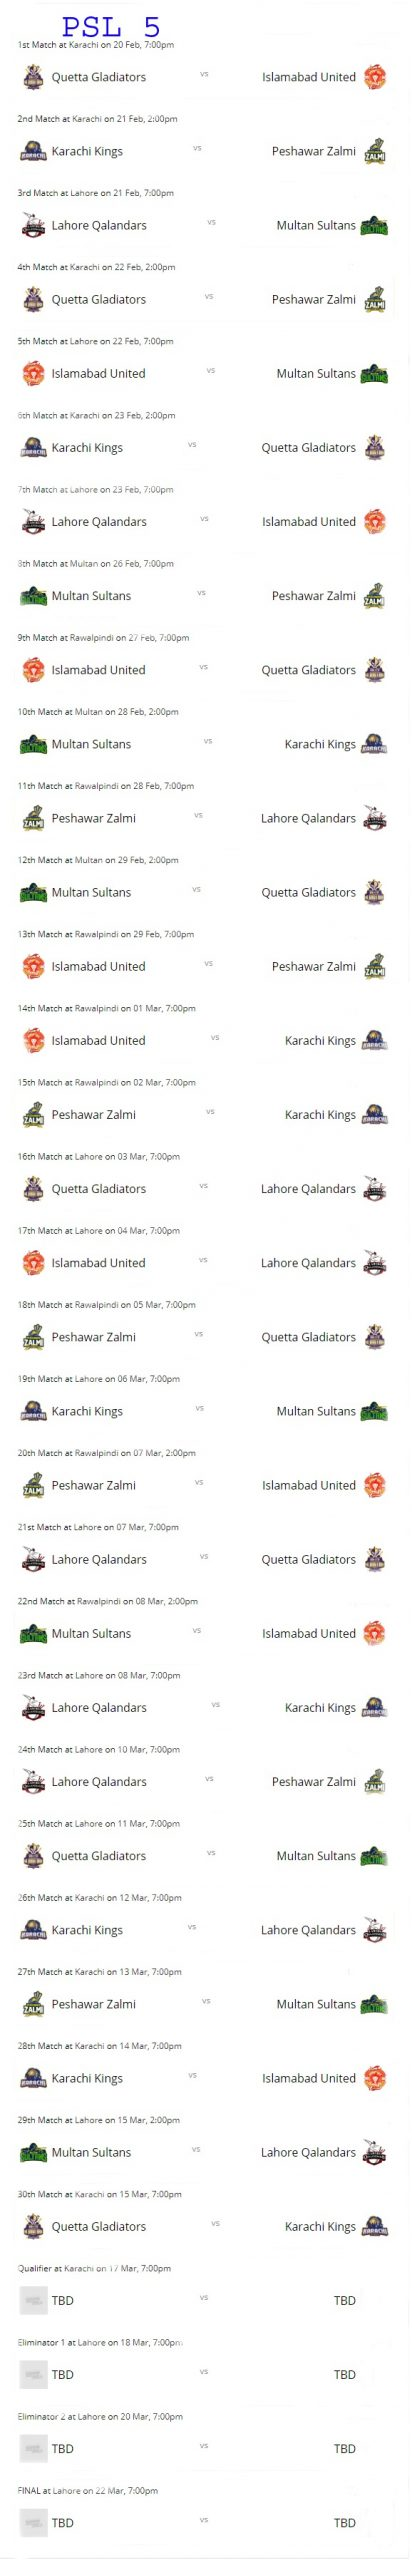 PSL 5 2020 Team, Matches Schedule, Venue & Time Table